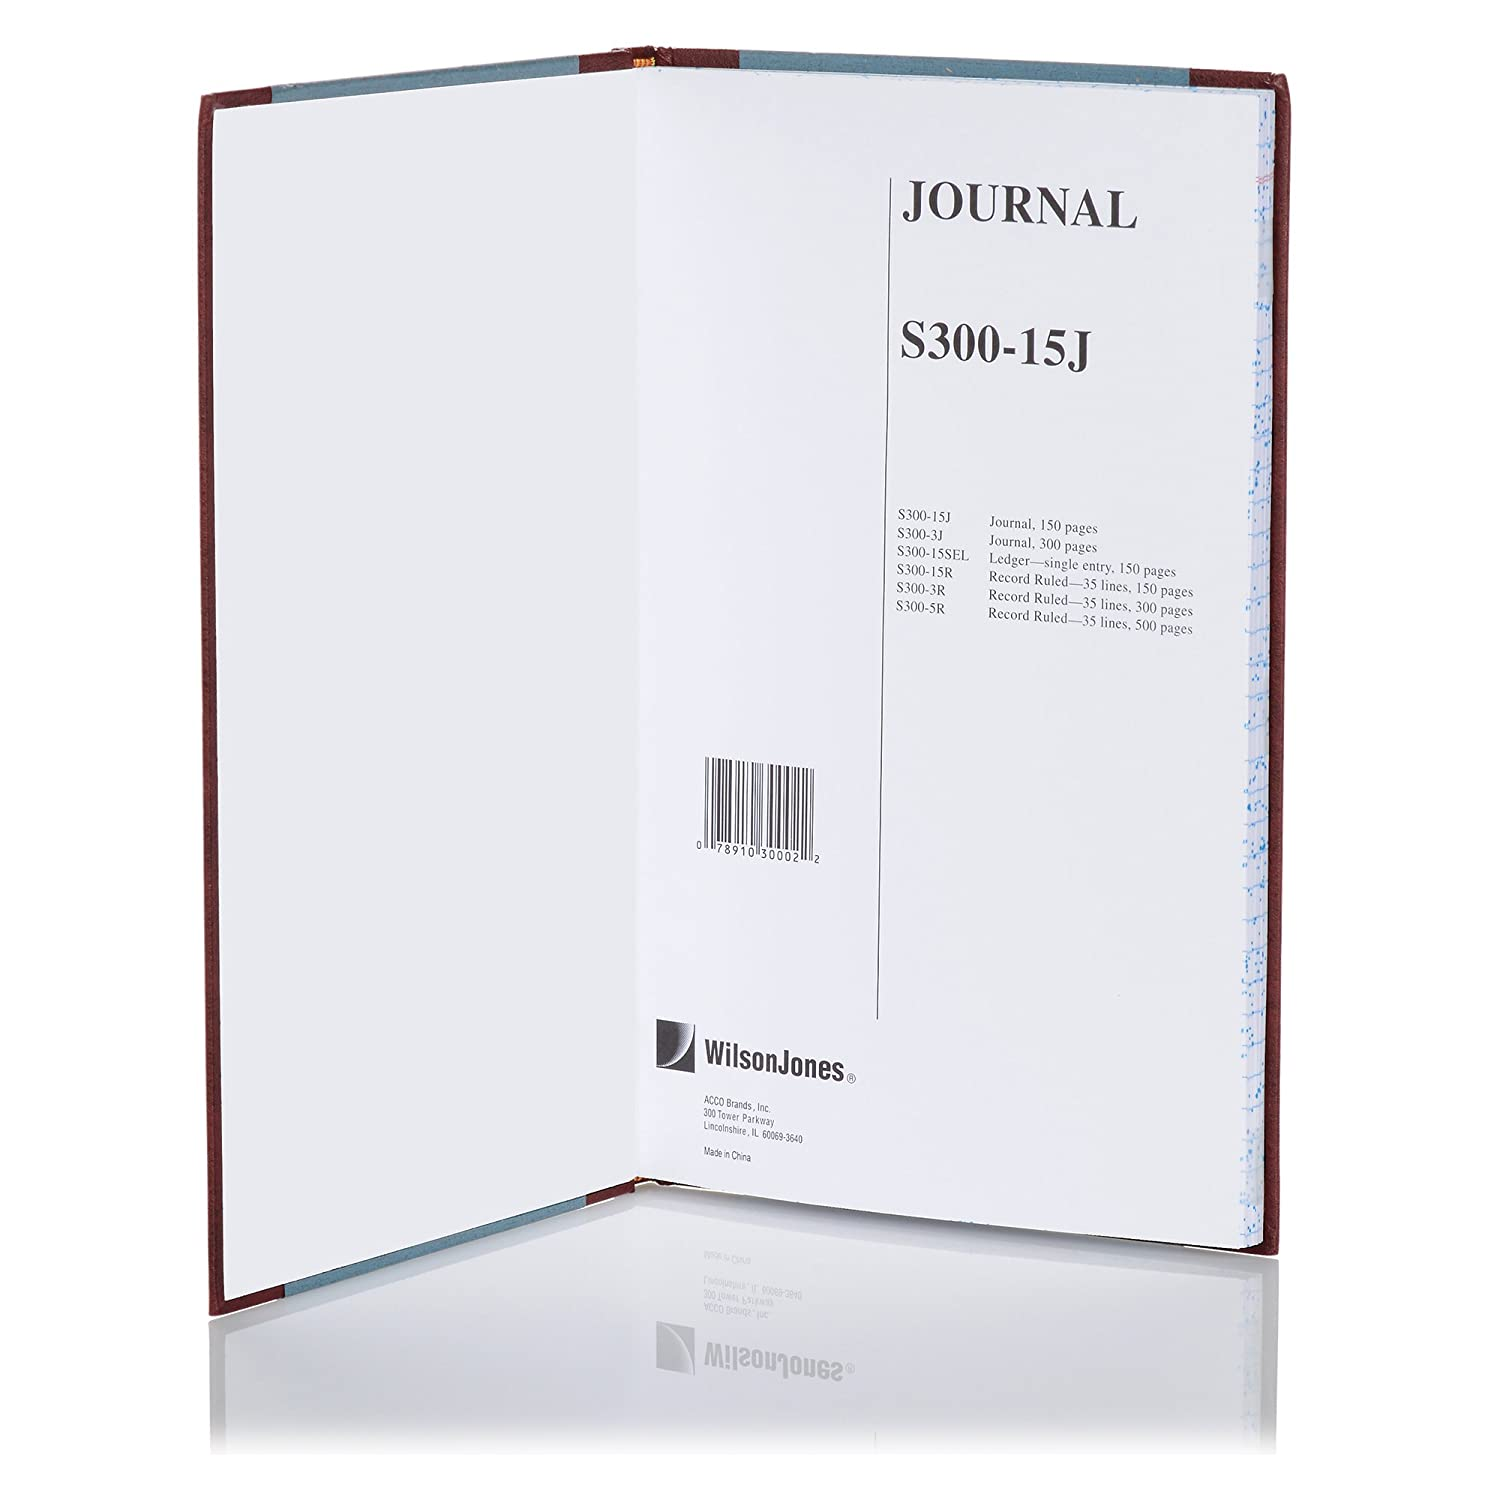 "Amazon.com : Wilson Jones Account Journal, 11-3/4"" x 7-1/4"", Ruled, 150  Pages, 33 Lines, 2 Column, S300 (WS300-15JA) : Record Books : Office  Products"